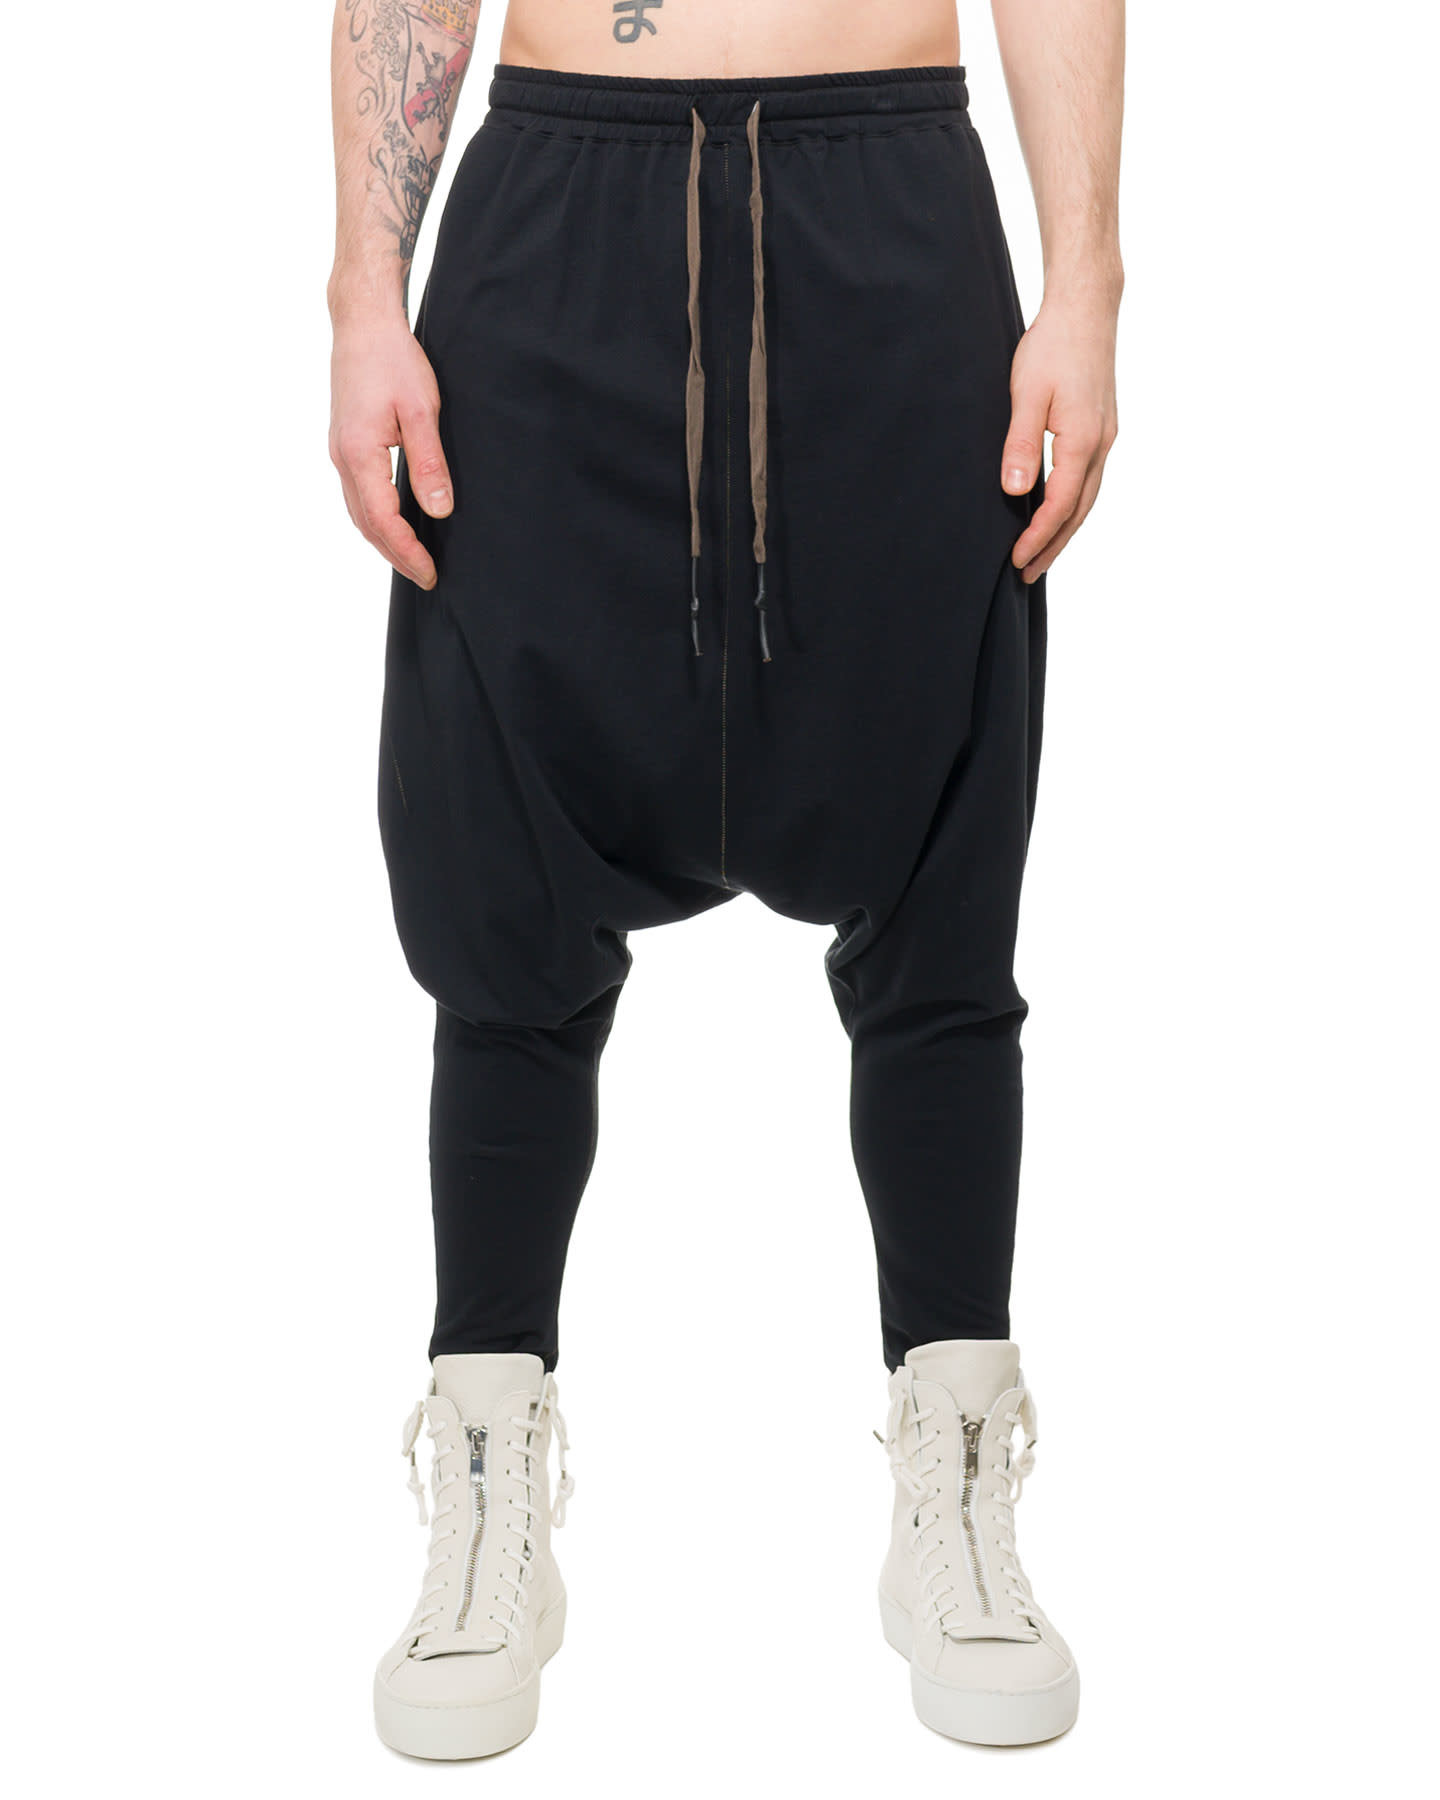 VAGENNIA PANTS - BLACK